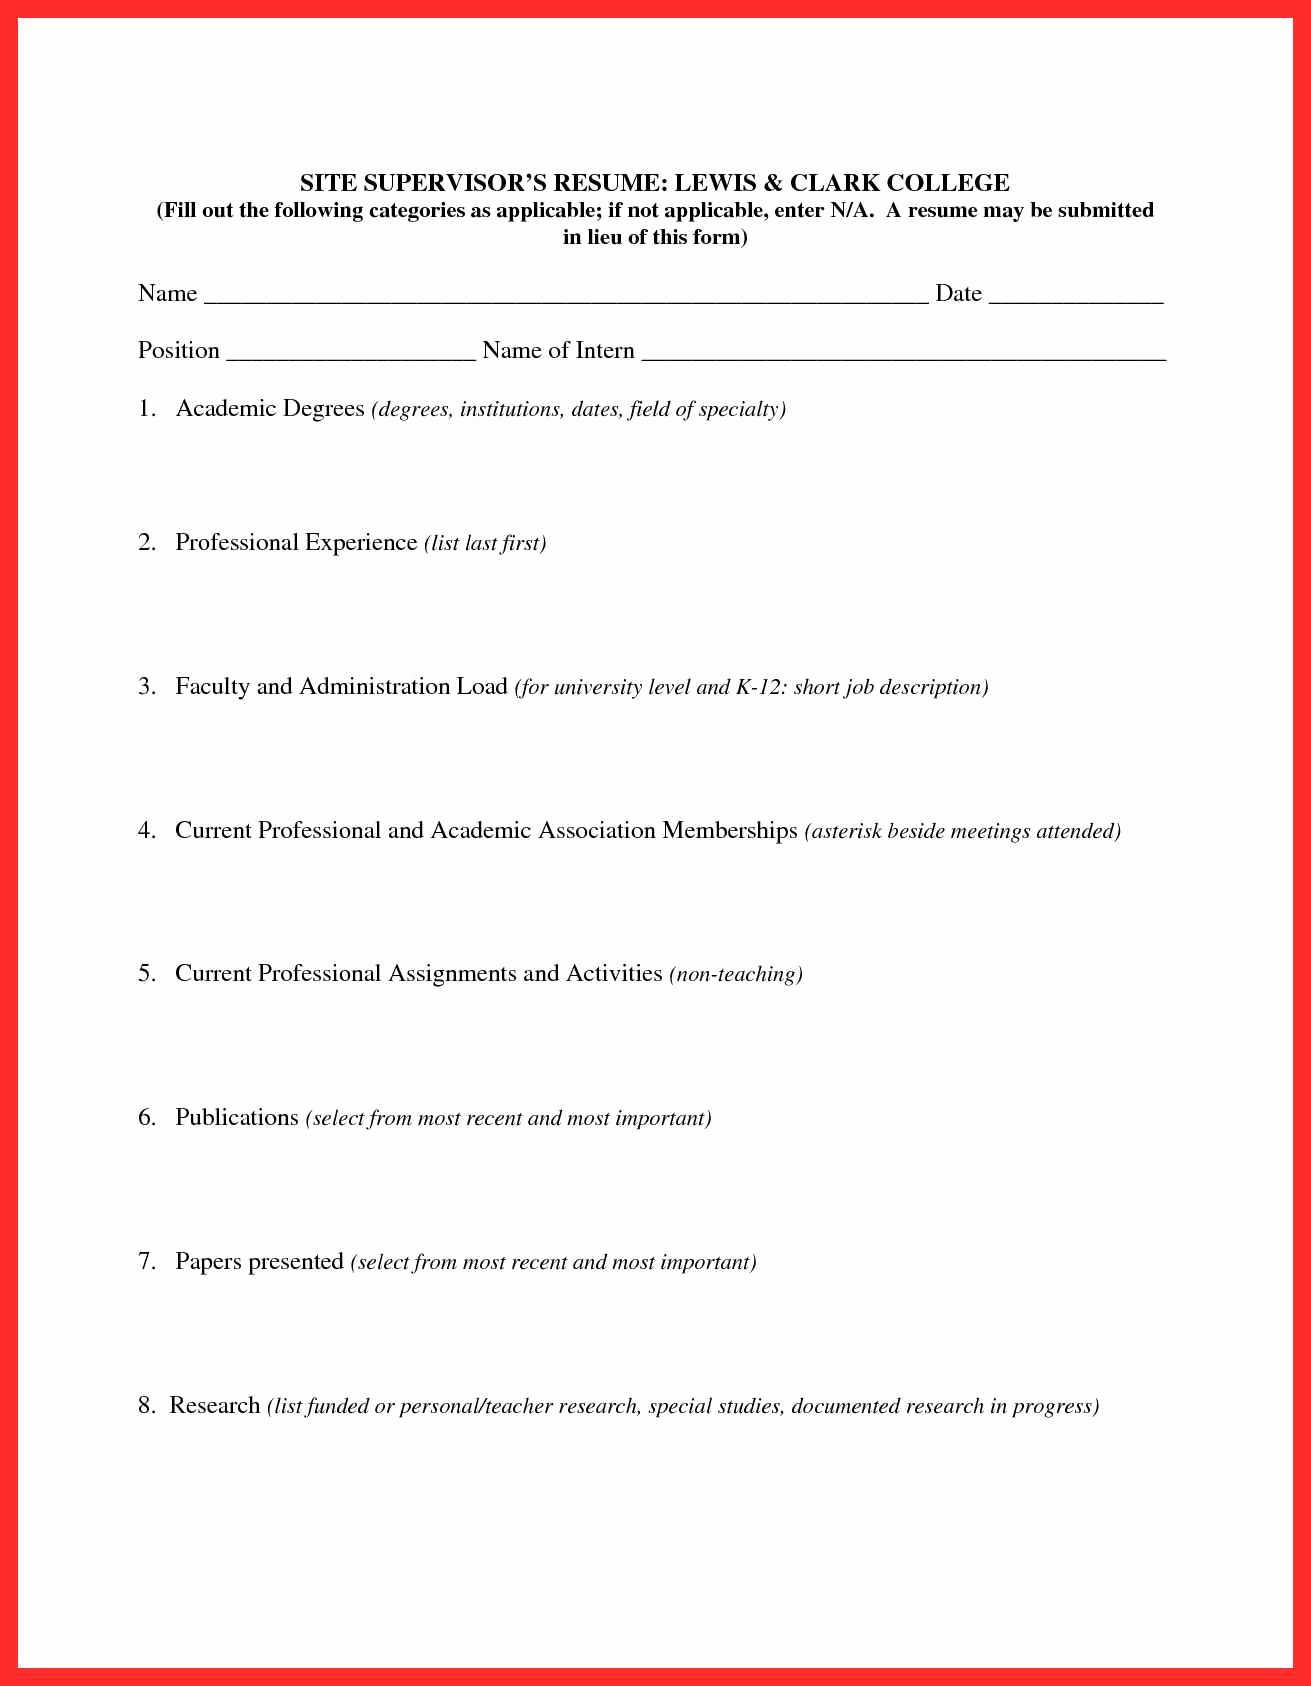 Fill In Resume form